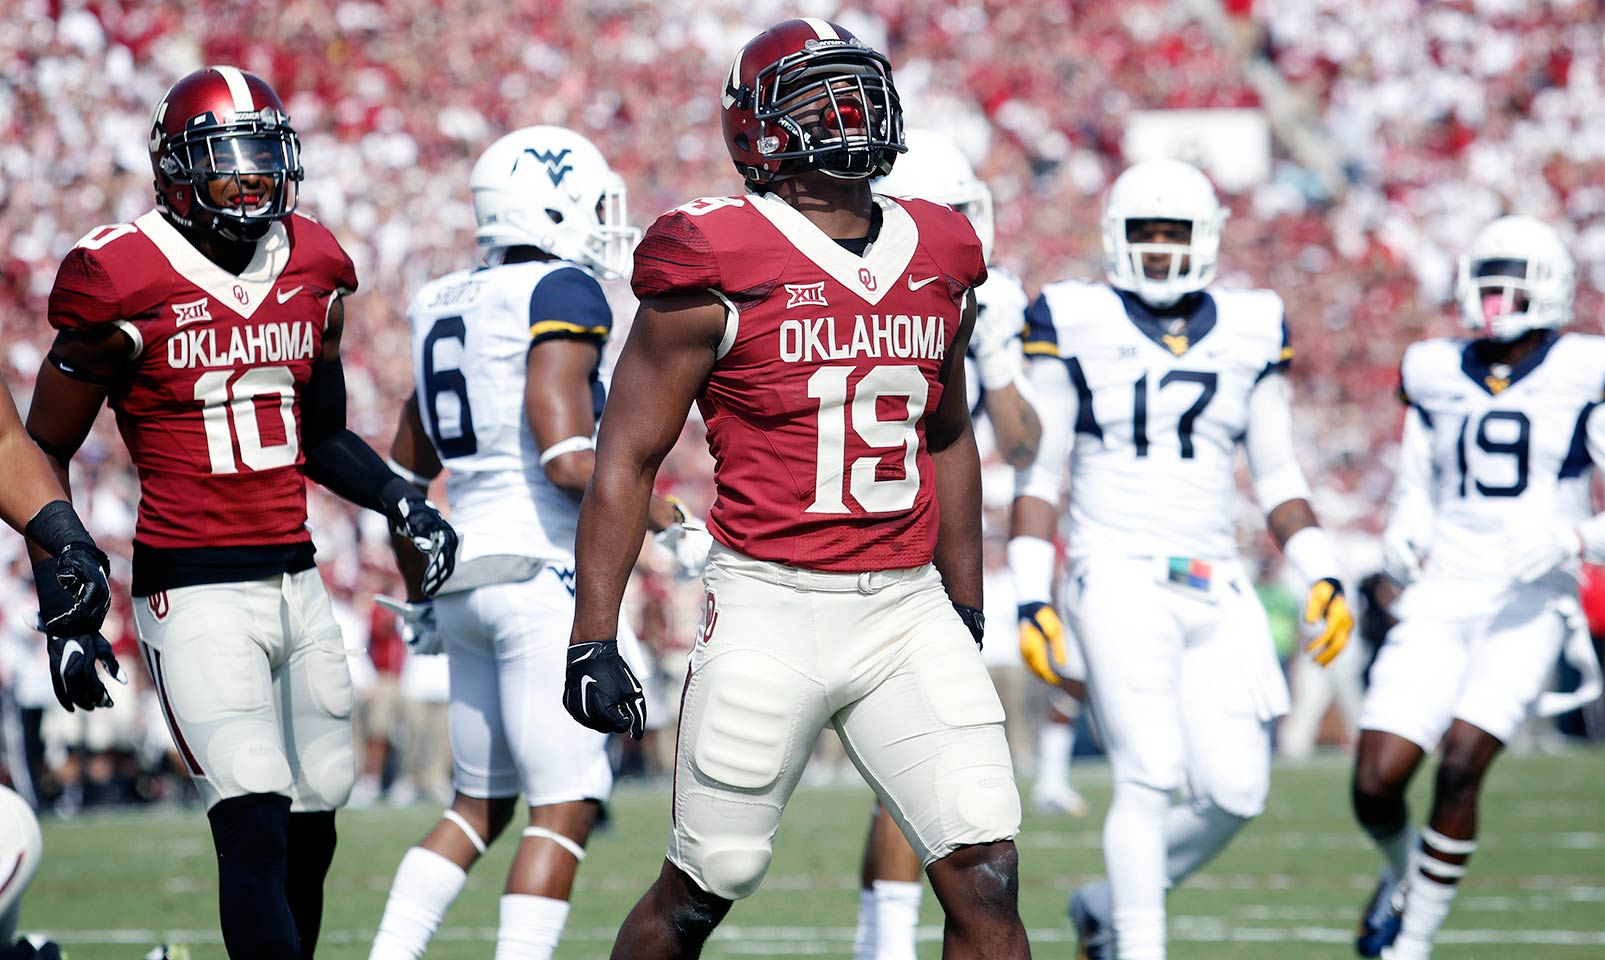 Oklahoma 44, West Virginia 24: Eric Striker led a dominant defensive effort with 13 tackles, three tackles for loss, two sacks and a forced fumble.The Sooners' defense forced five turnovers while Baker Mayfield continued to shine with 320 yards passing and three touchdowns.